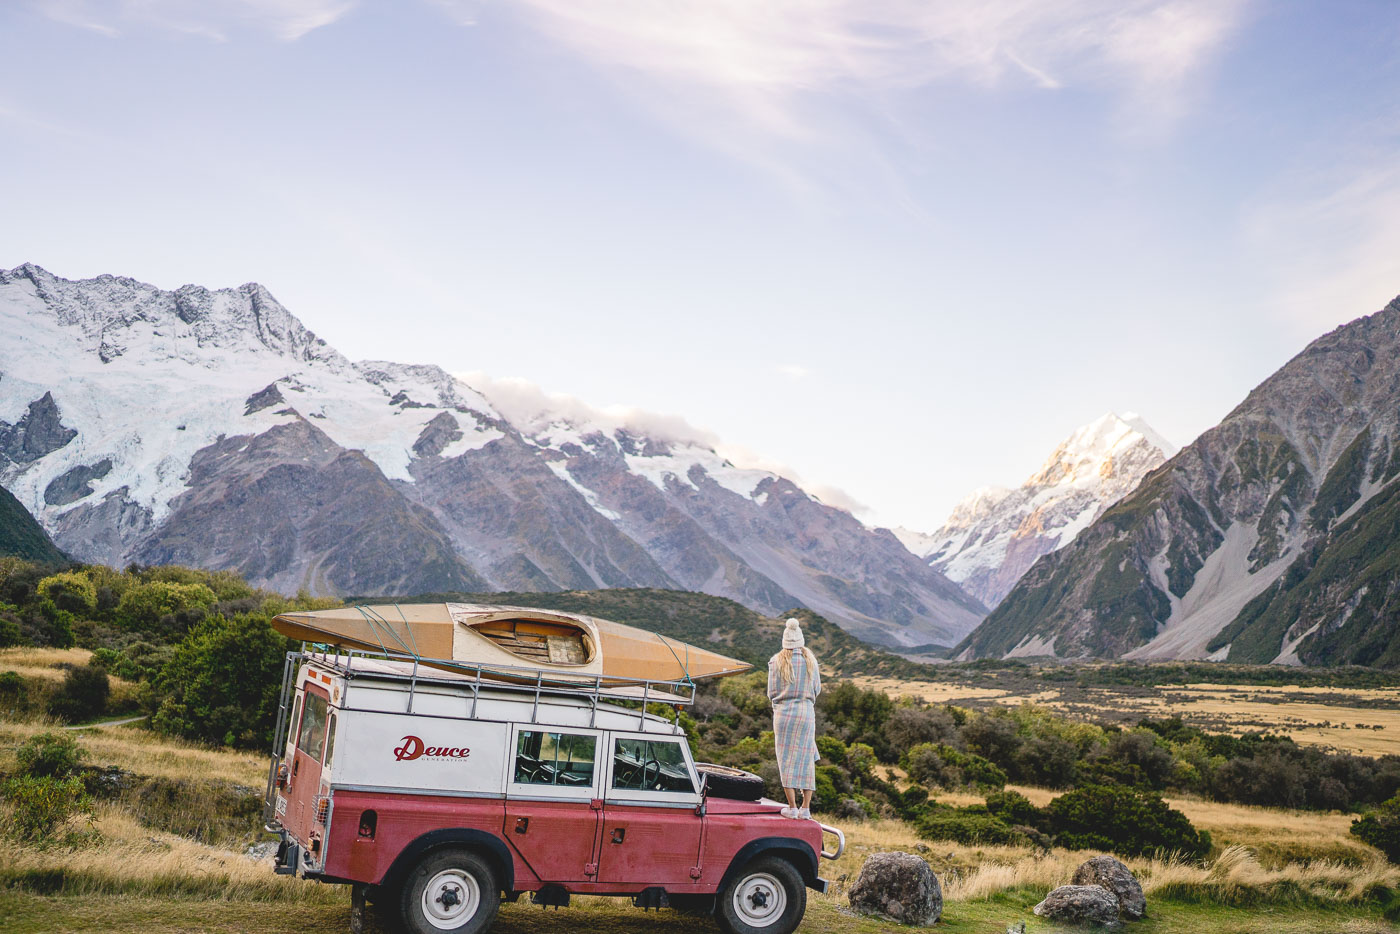 Wine and crackers on the Deuce Rover as the last evening light hits the top of Mount Cook.